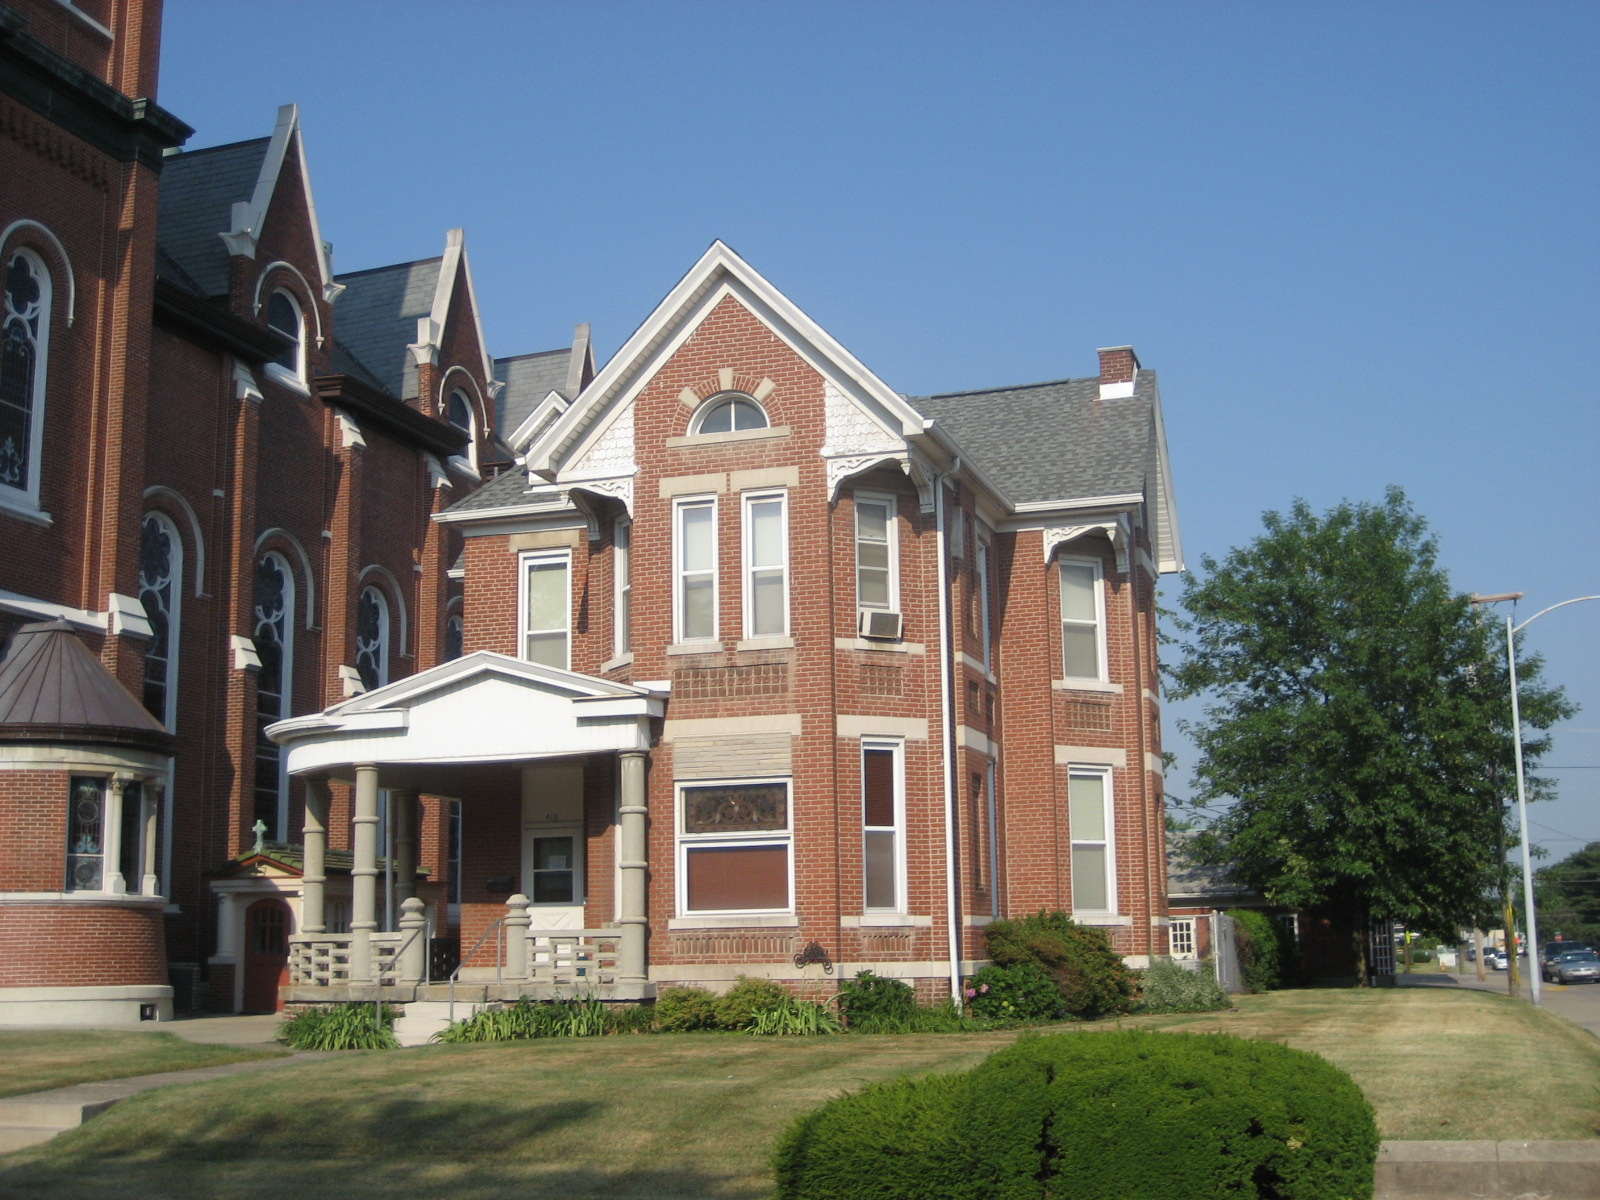 St. Boniface Catholic Rectory